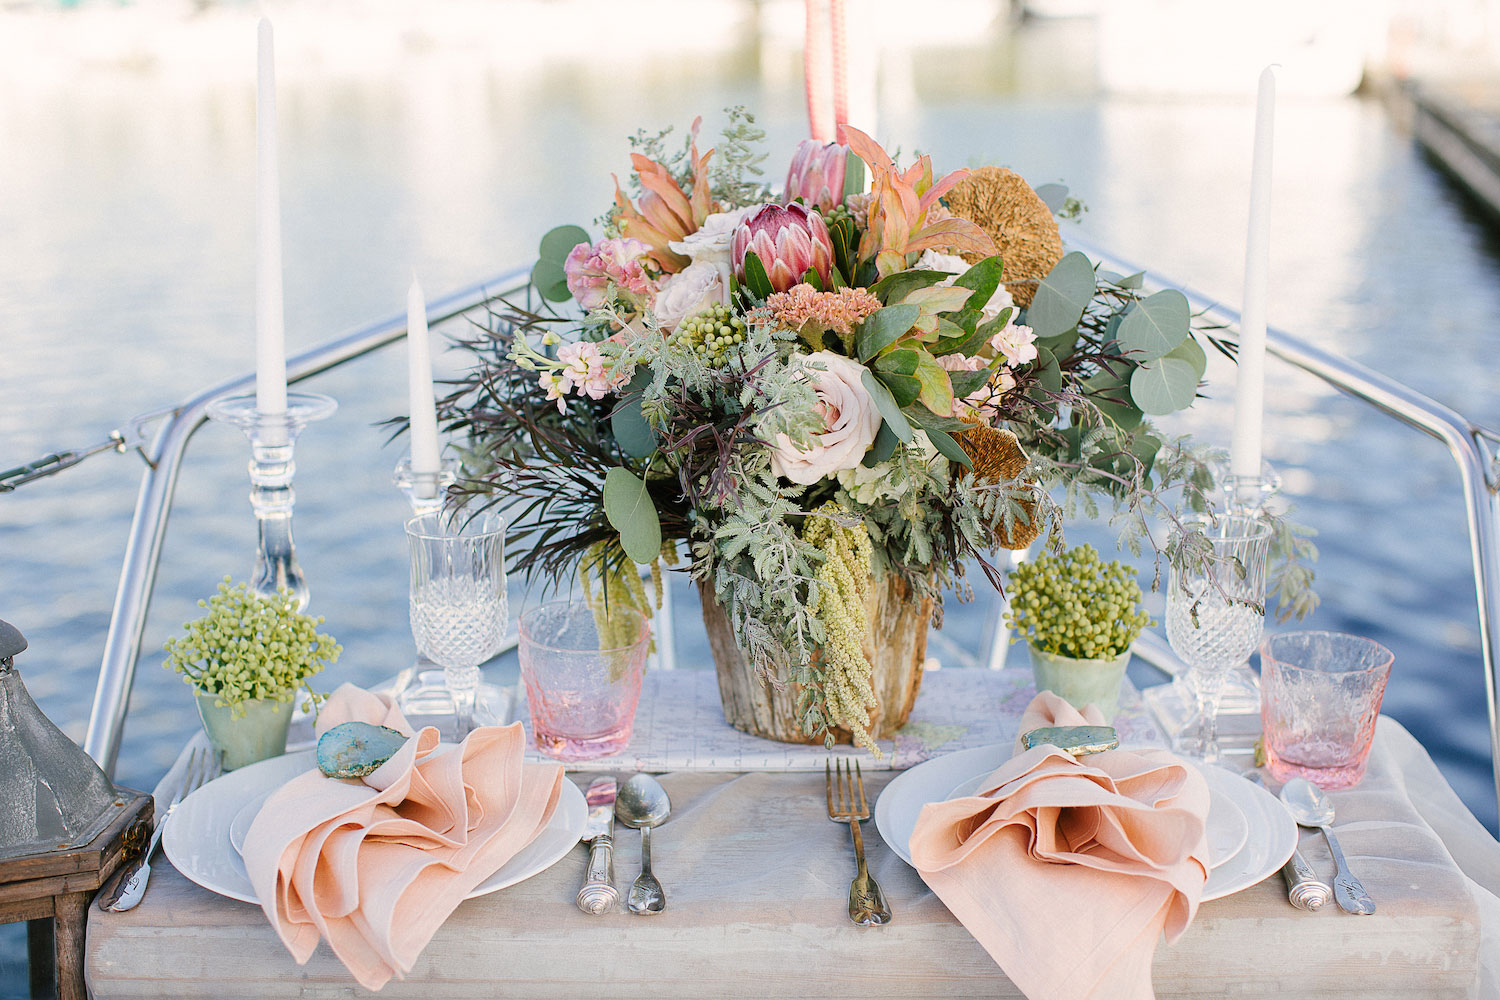 Rustic protea wedding centerpiece on sailboat for photo shoot